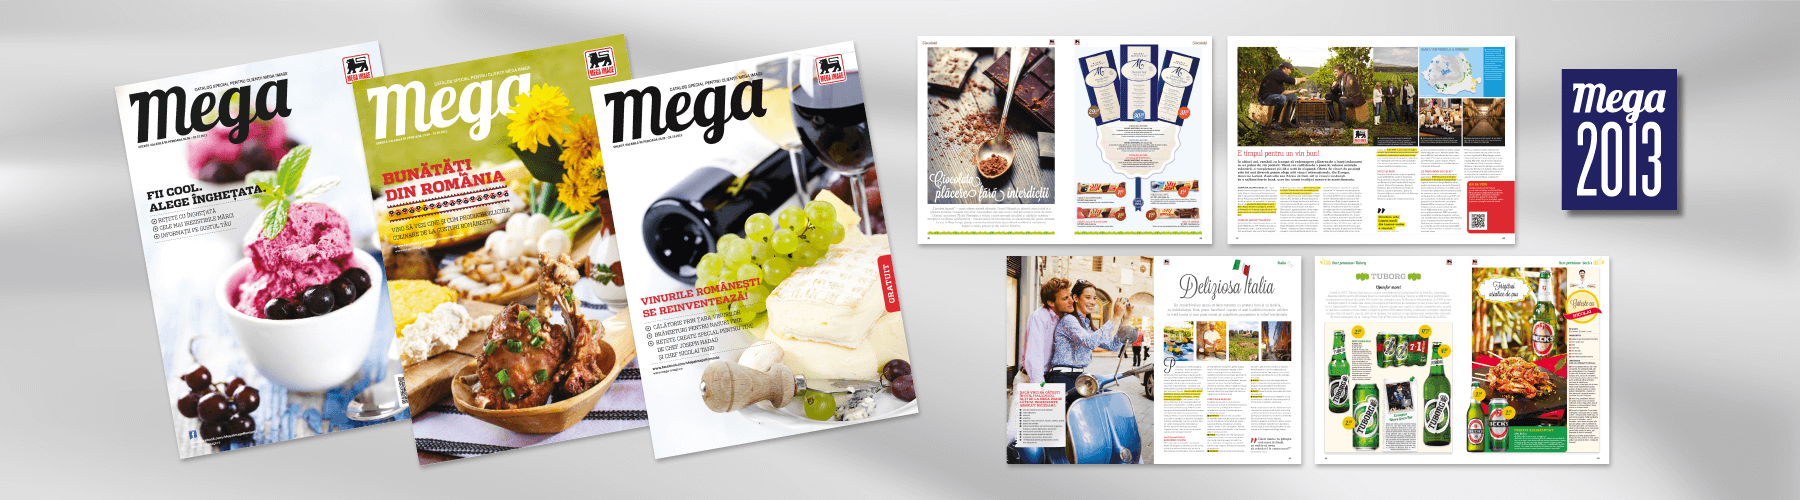 Mega customer magazine with a fresh design in 2013